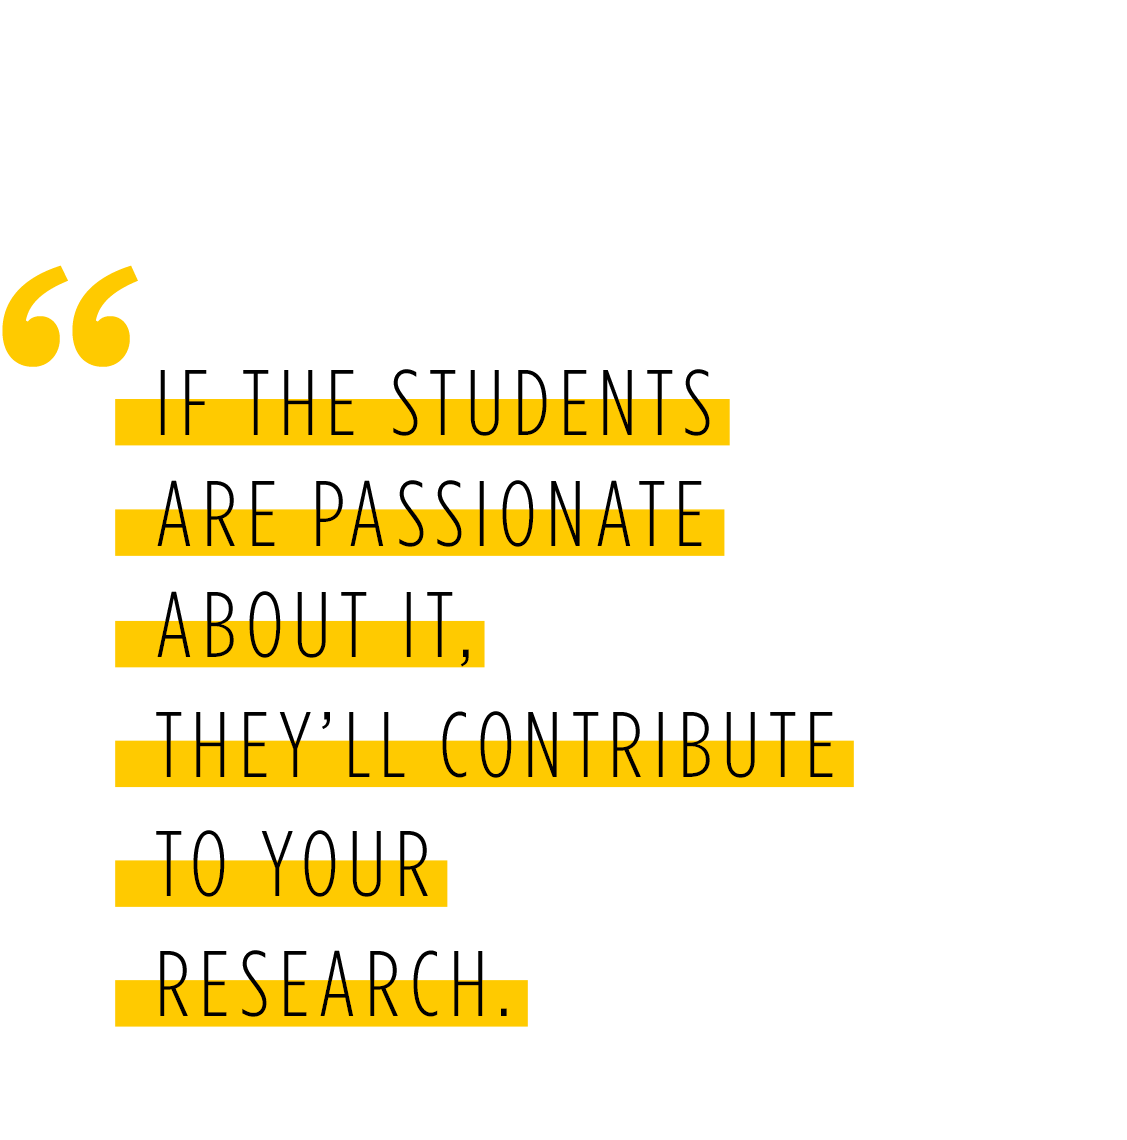 If the students are passionate about it, they'll contribute to your research